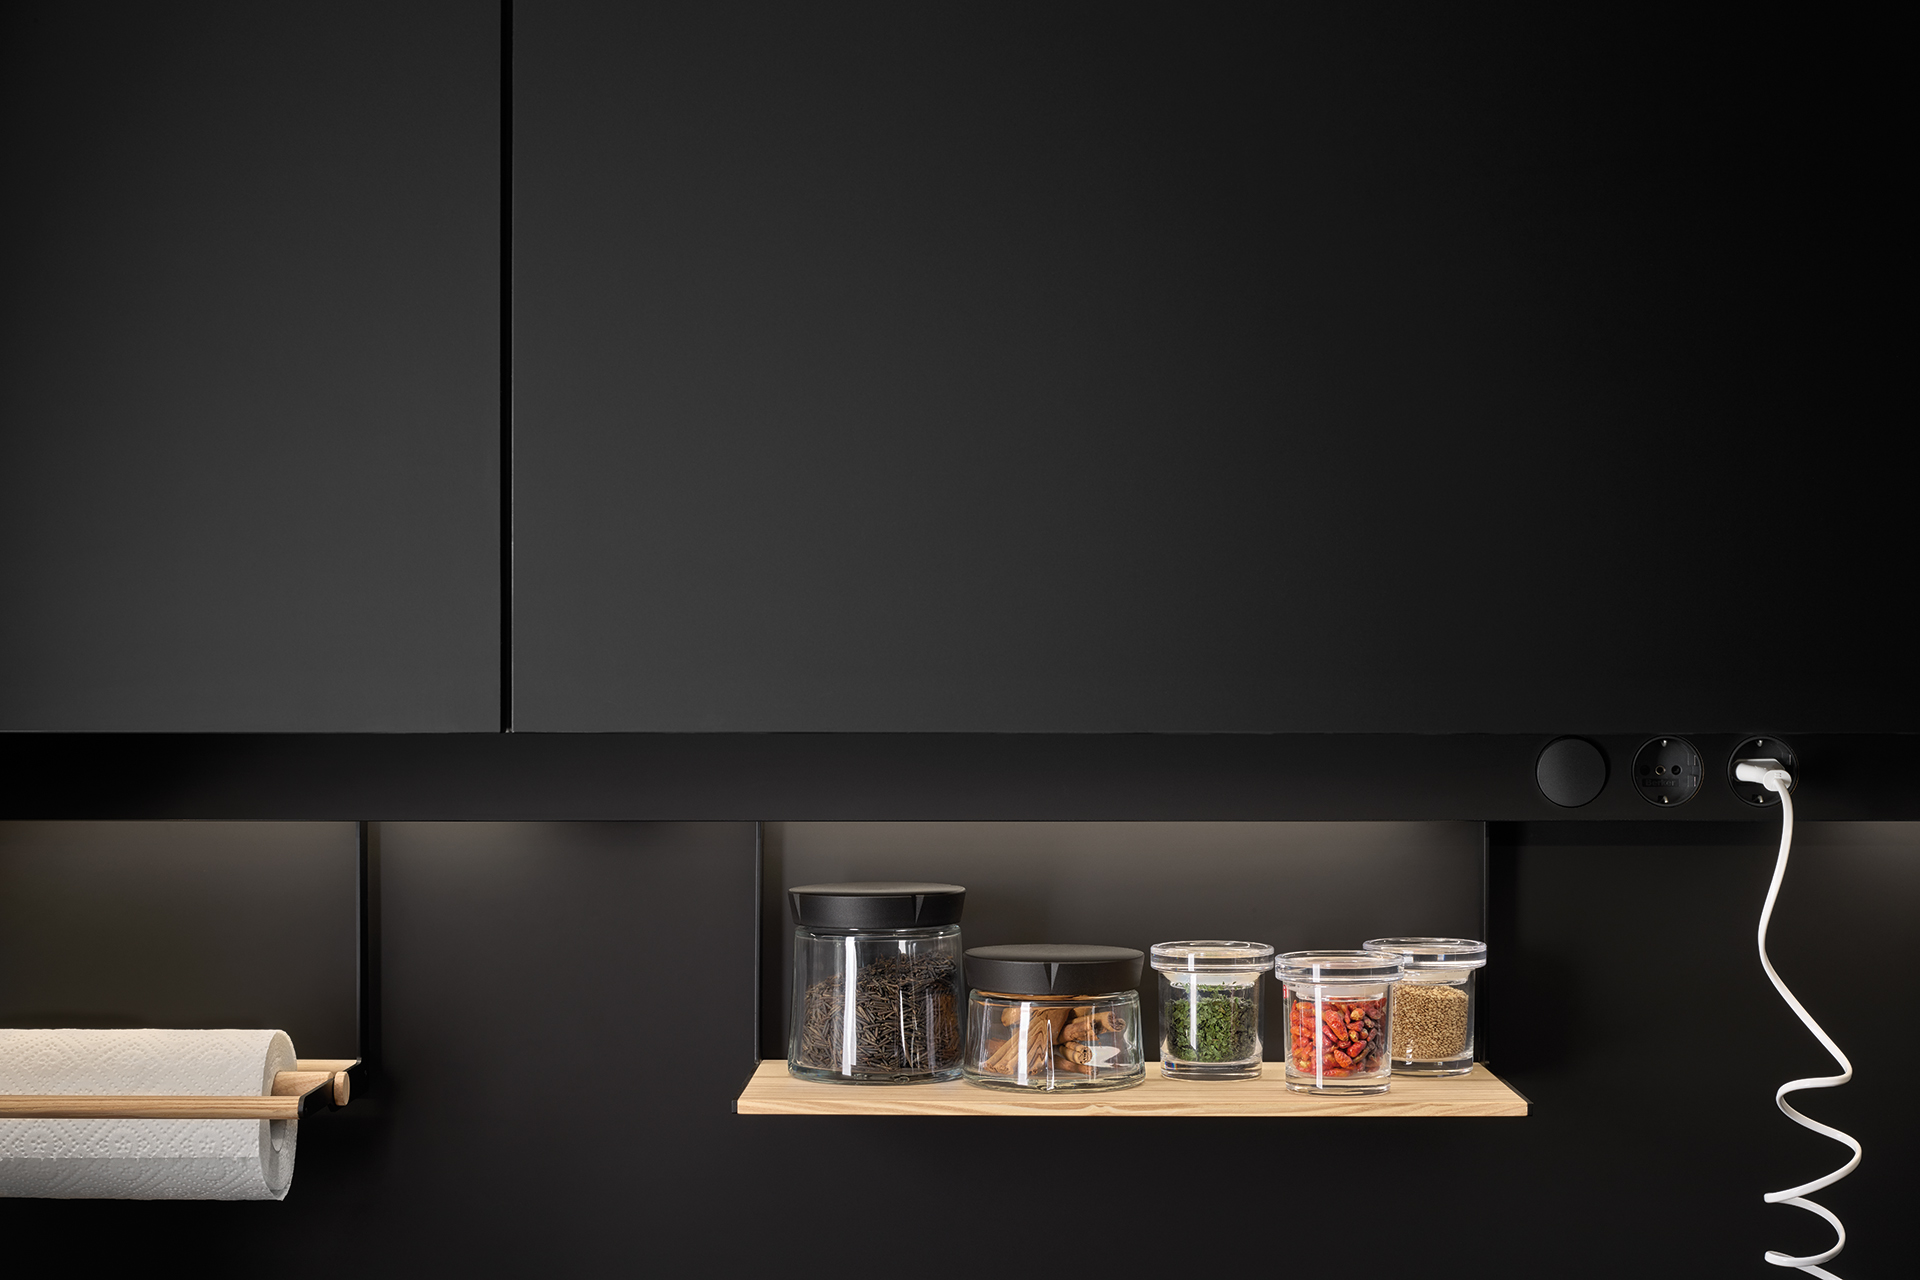 Santos kitchens with melamine or laminate finishes: variety and resistance